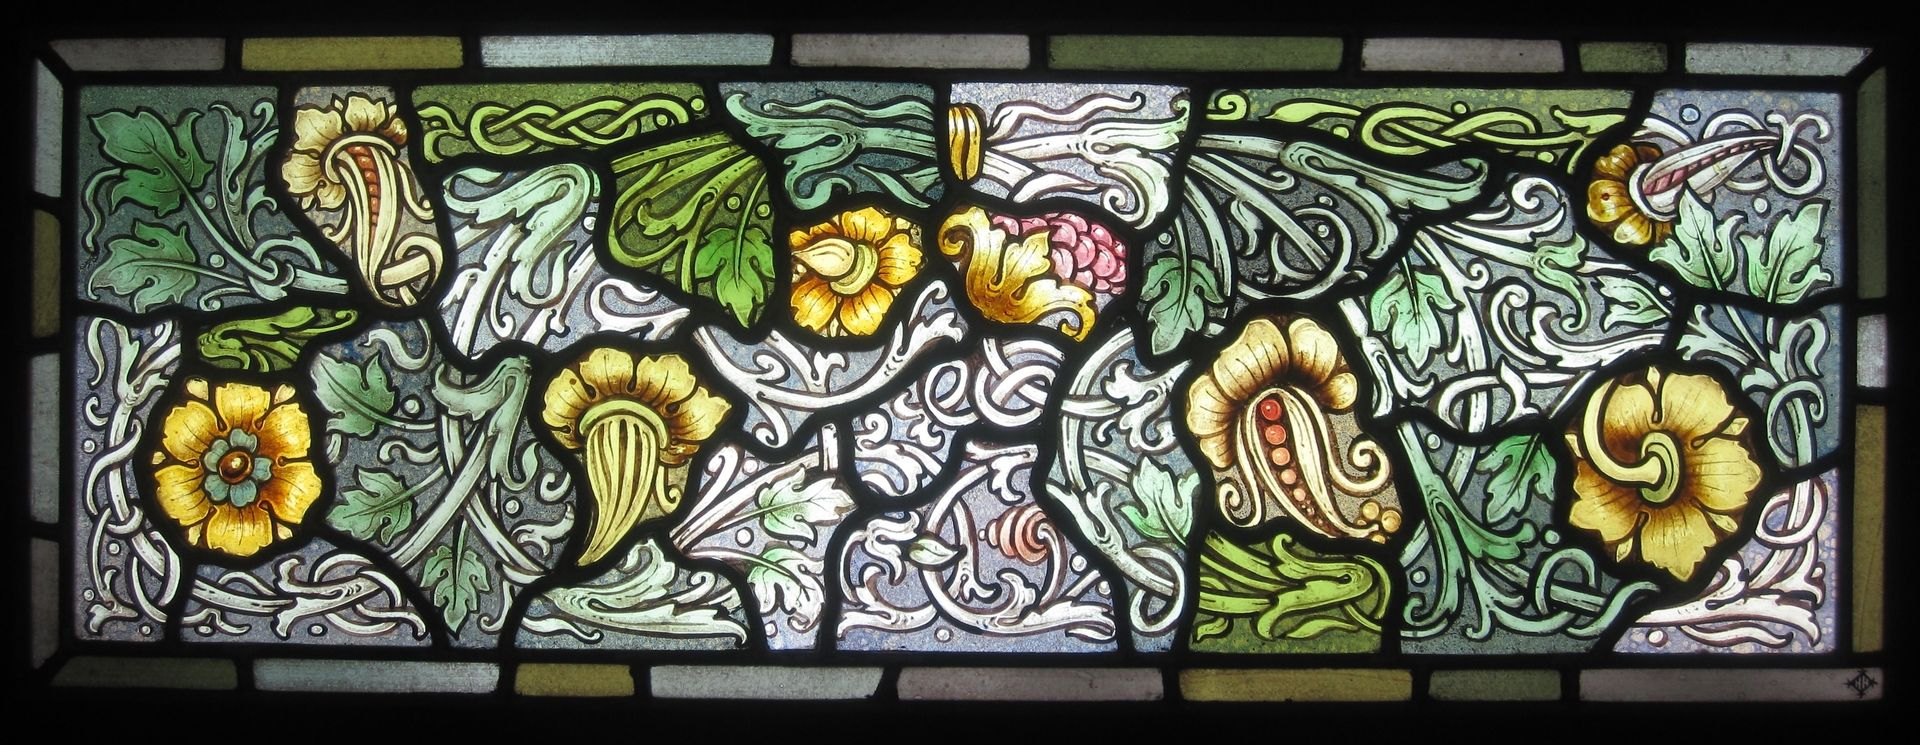 Hand Crafted Vines Leaves And Flowers Stained Glass By